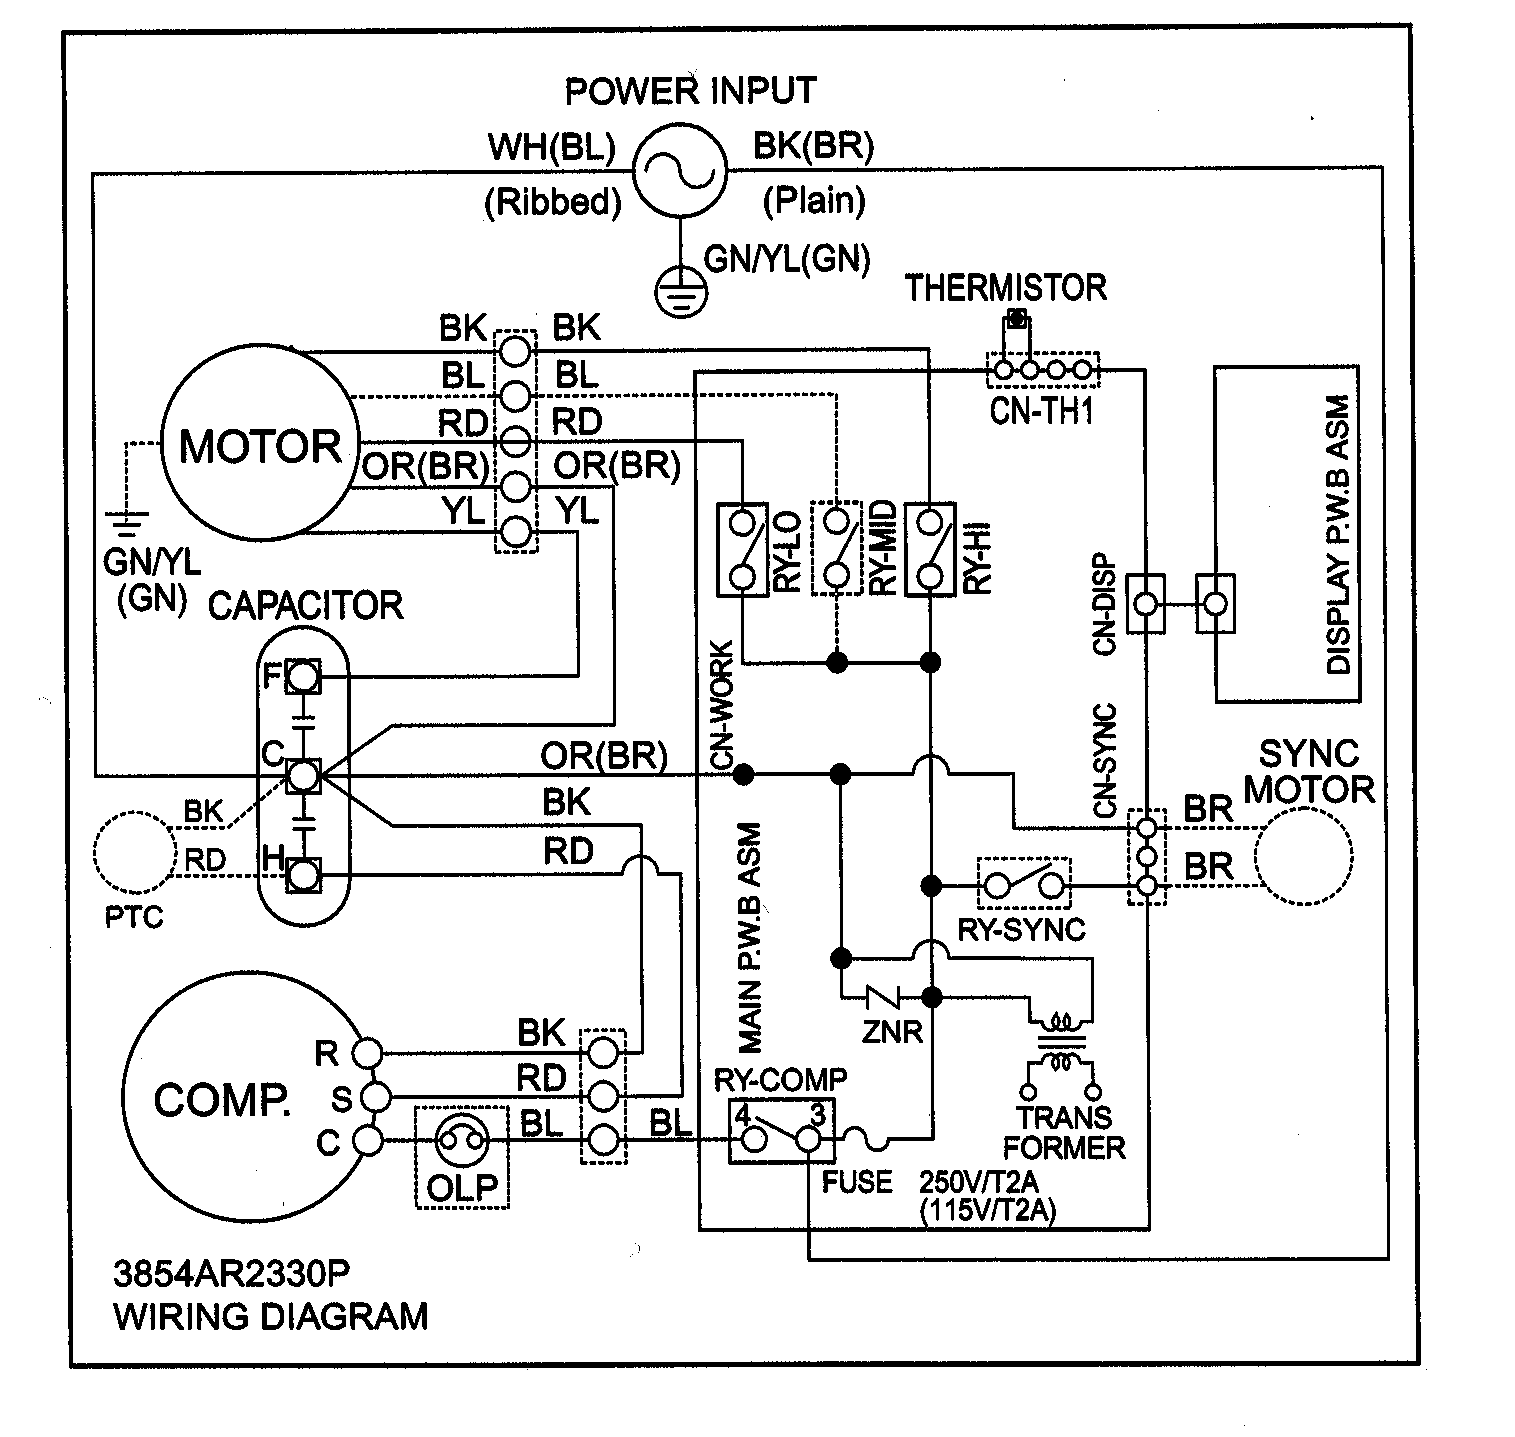 redman mobile home wiring diagram a duplex outlet wiring